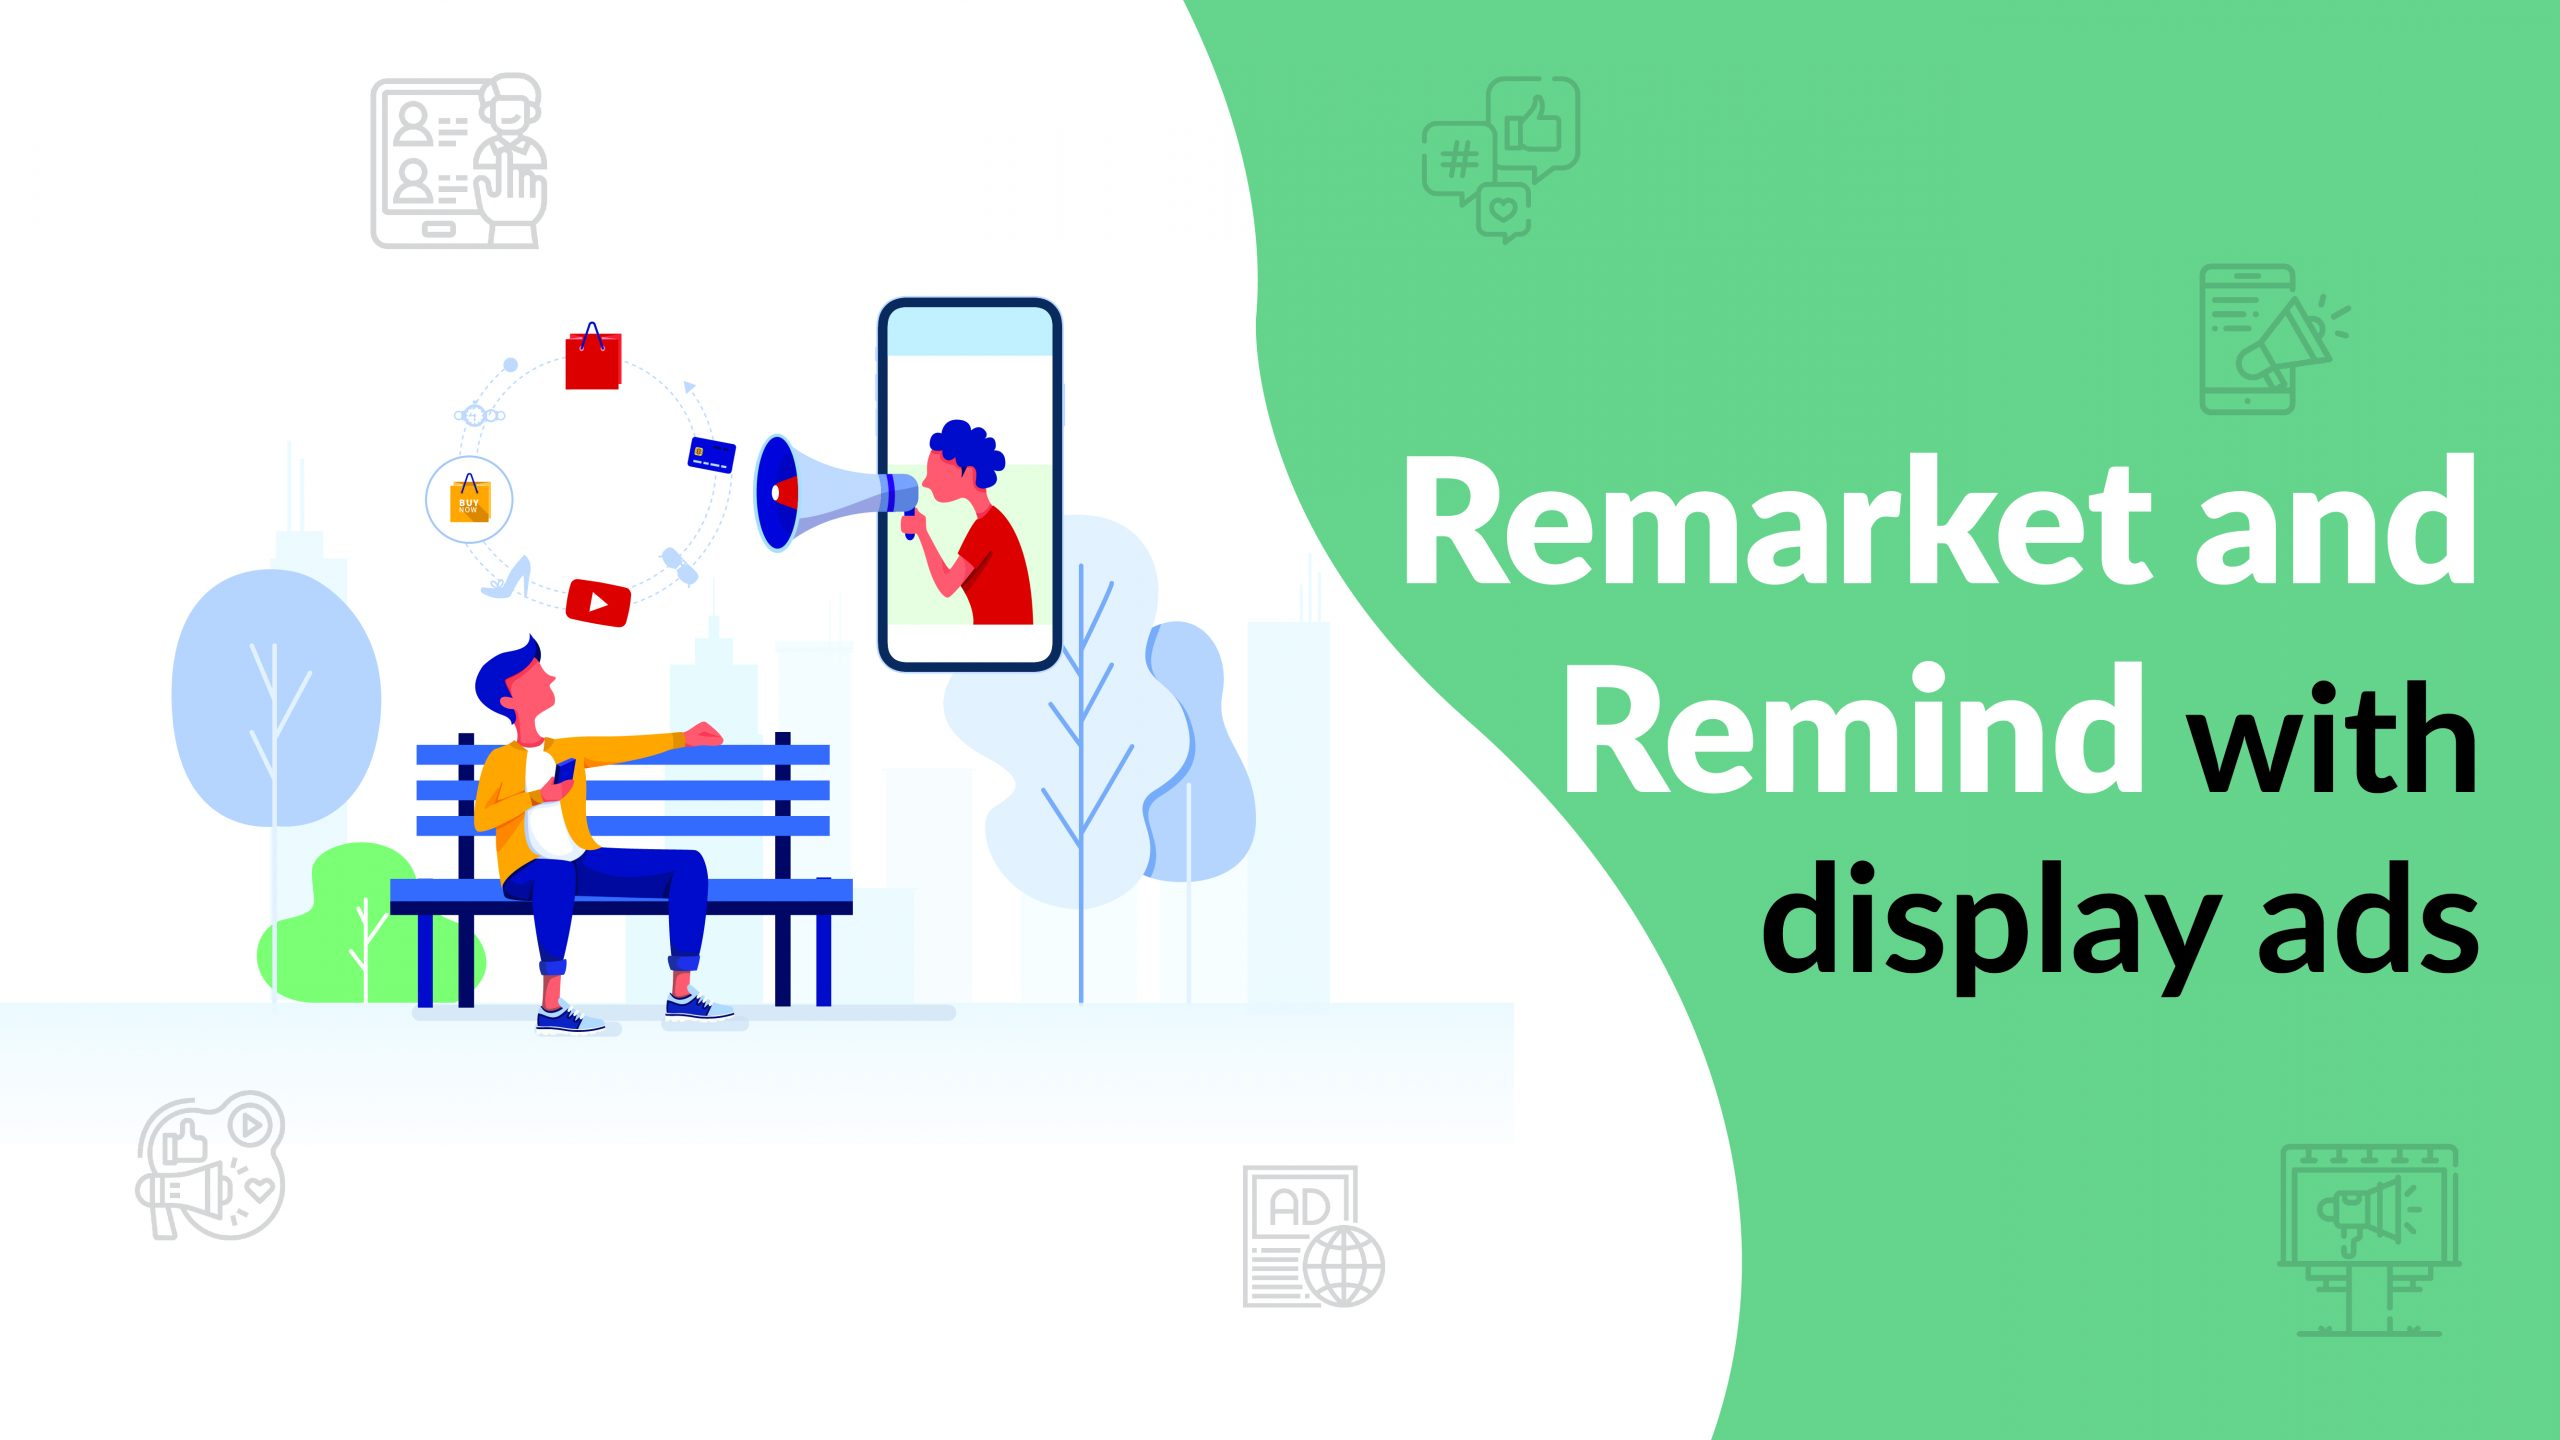 Remarket and Remind with display ads